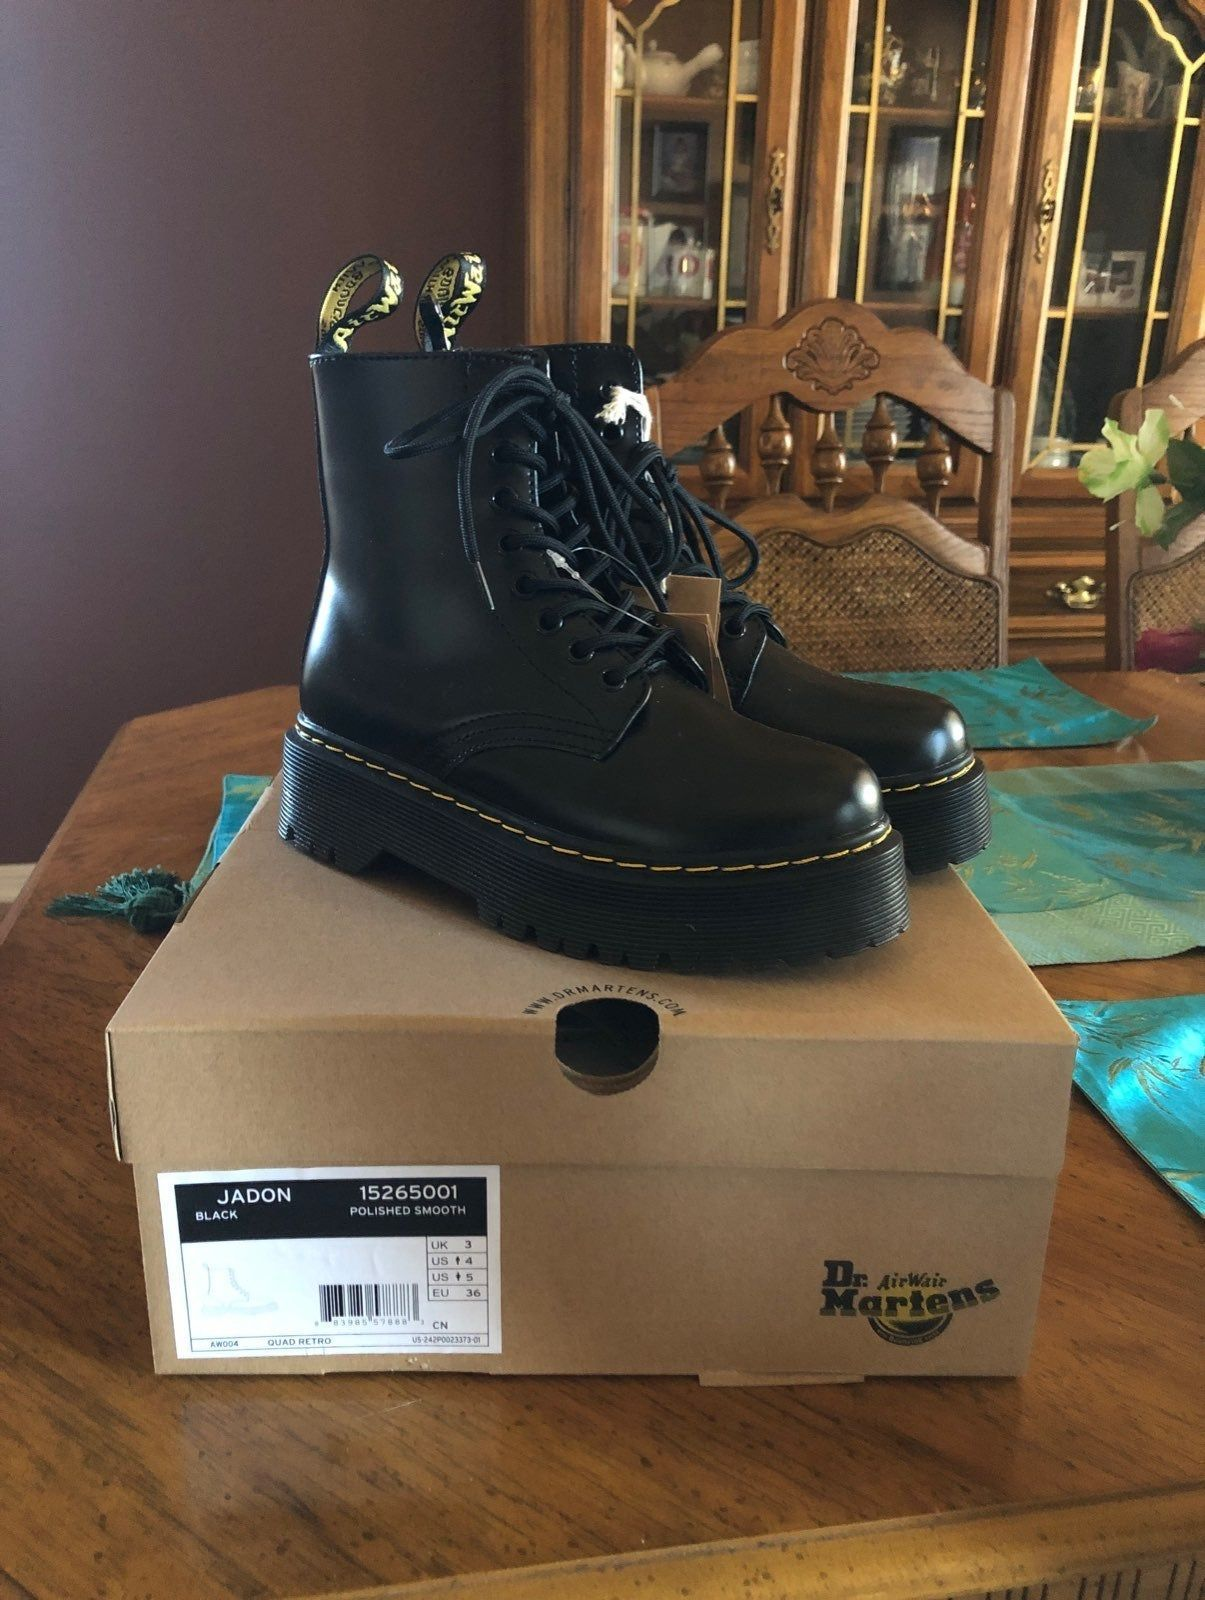 DR MARTENS 1460 SMOOTH Sneaker Box